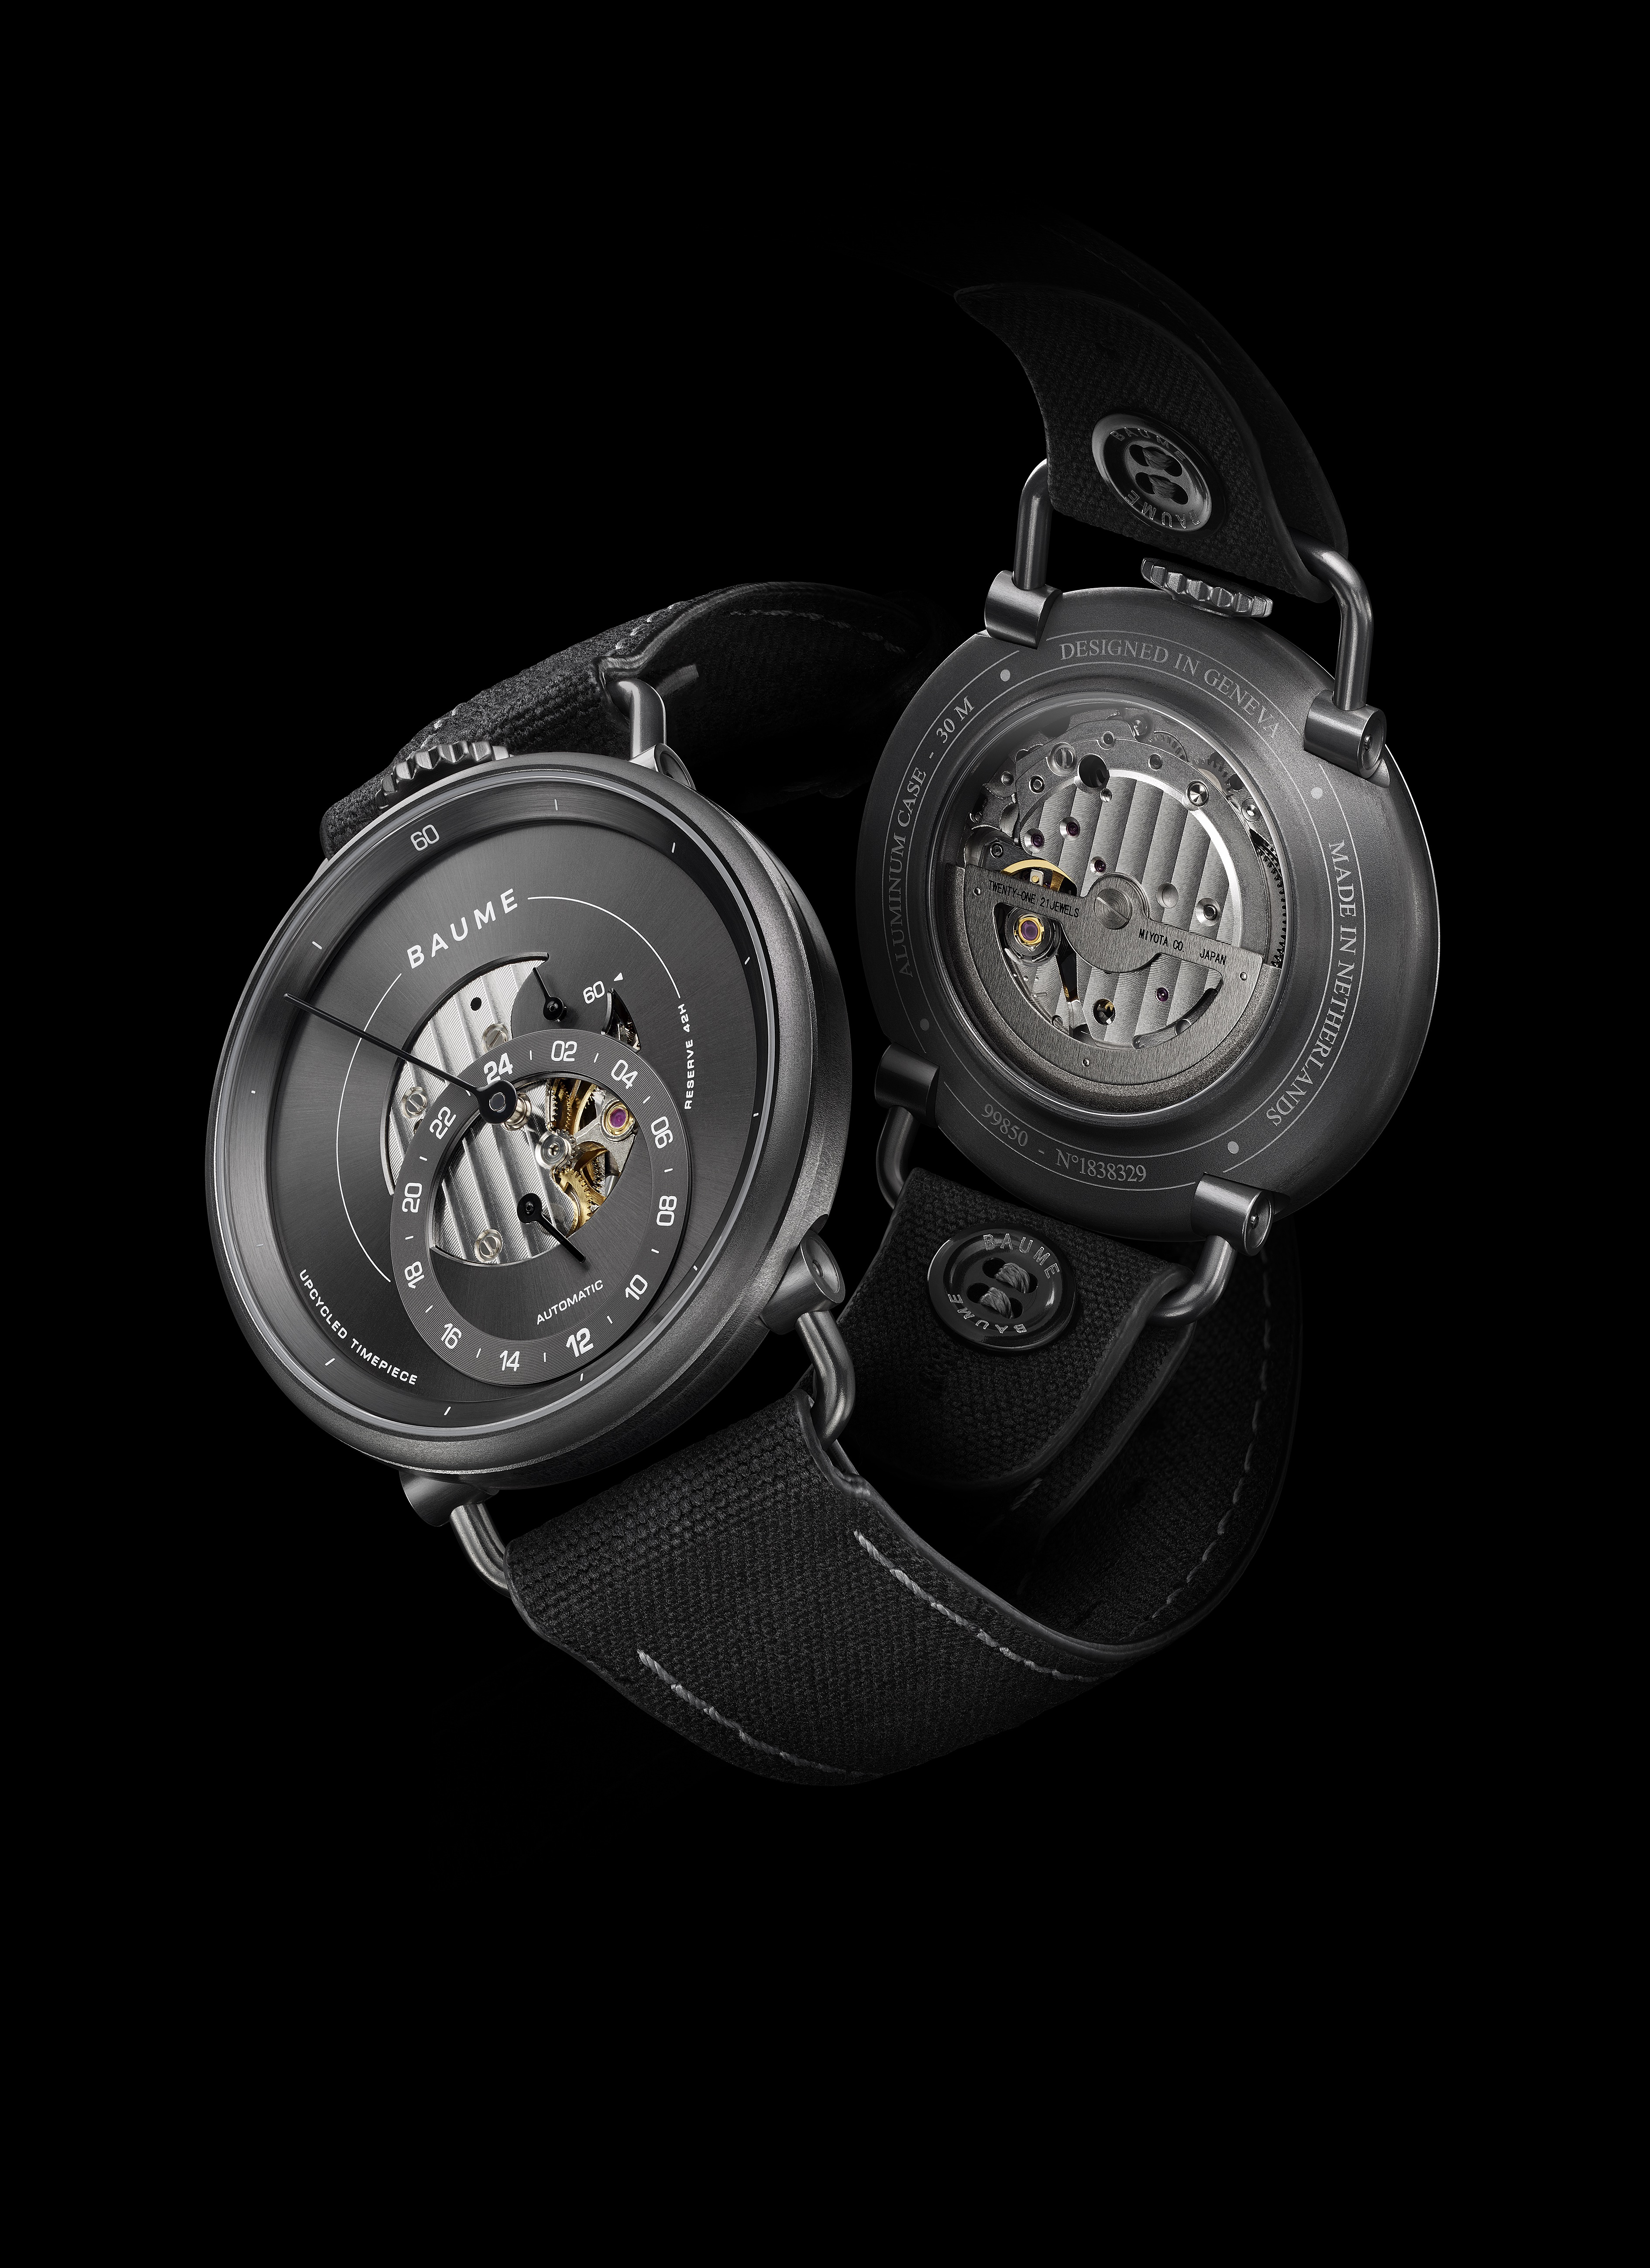 The new Baume brand offers the Iconic watch line (one of which is seen here) and a fully Custom Timepiece series.